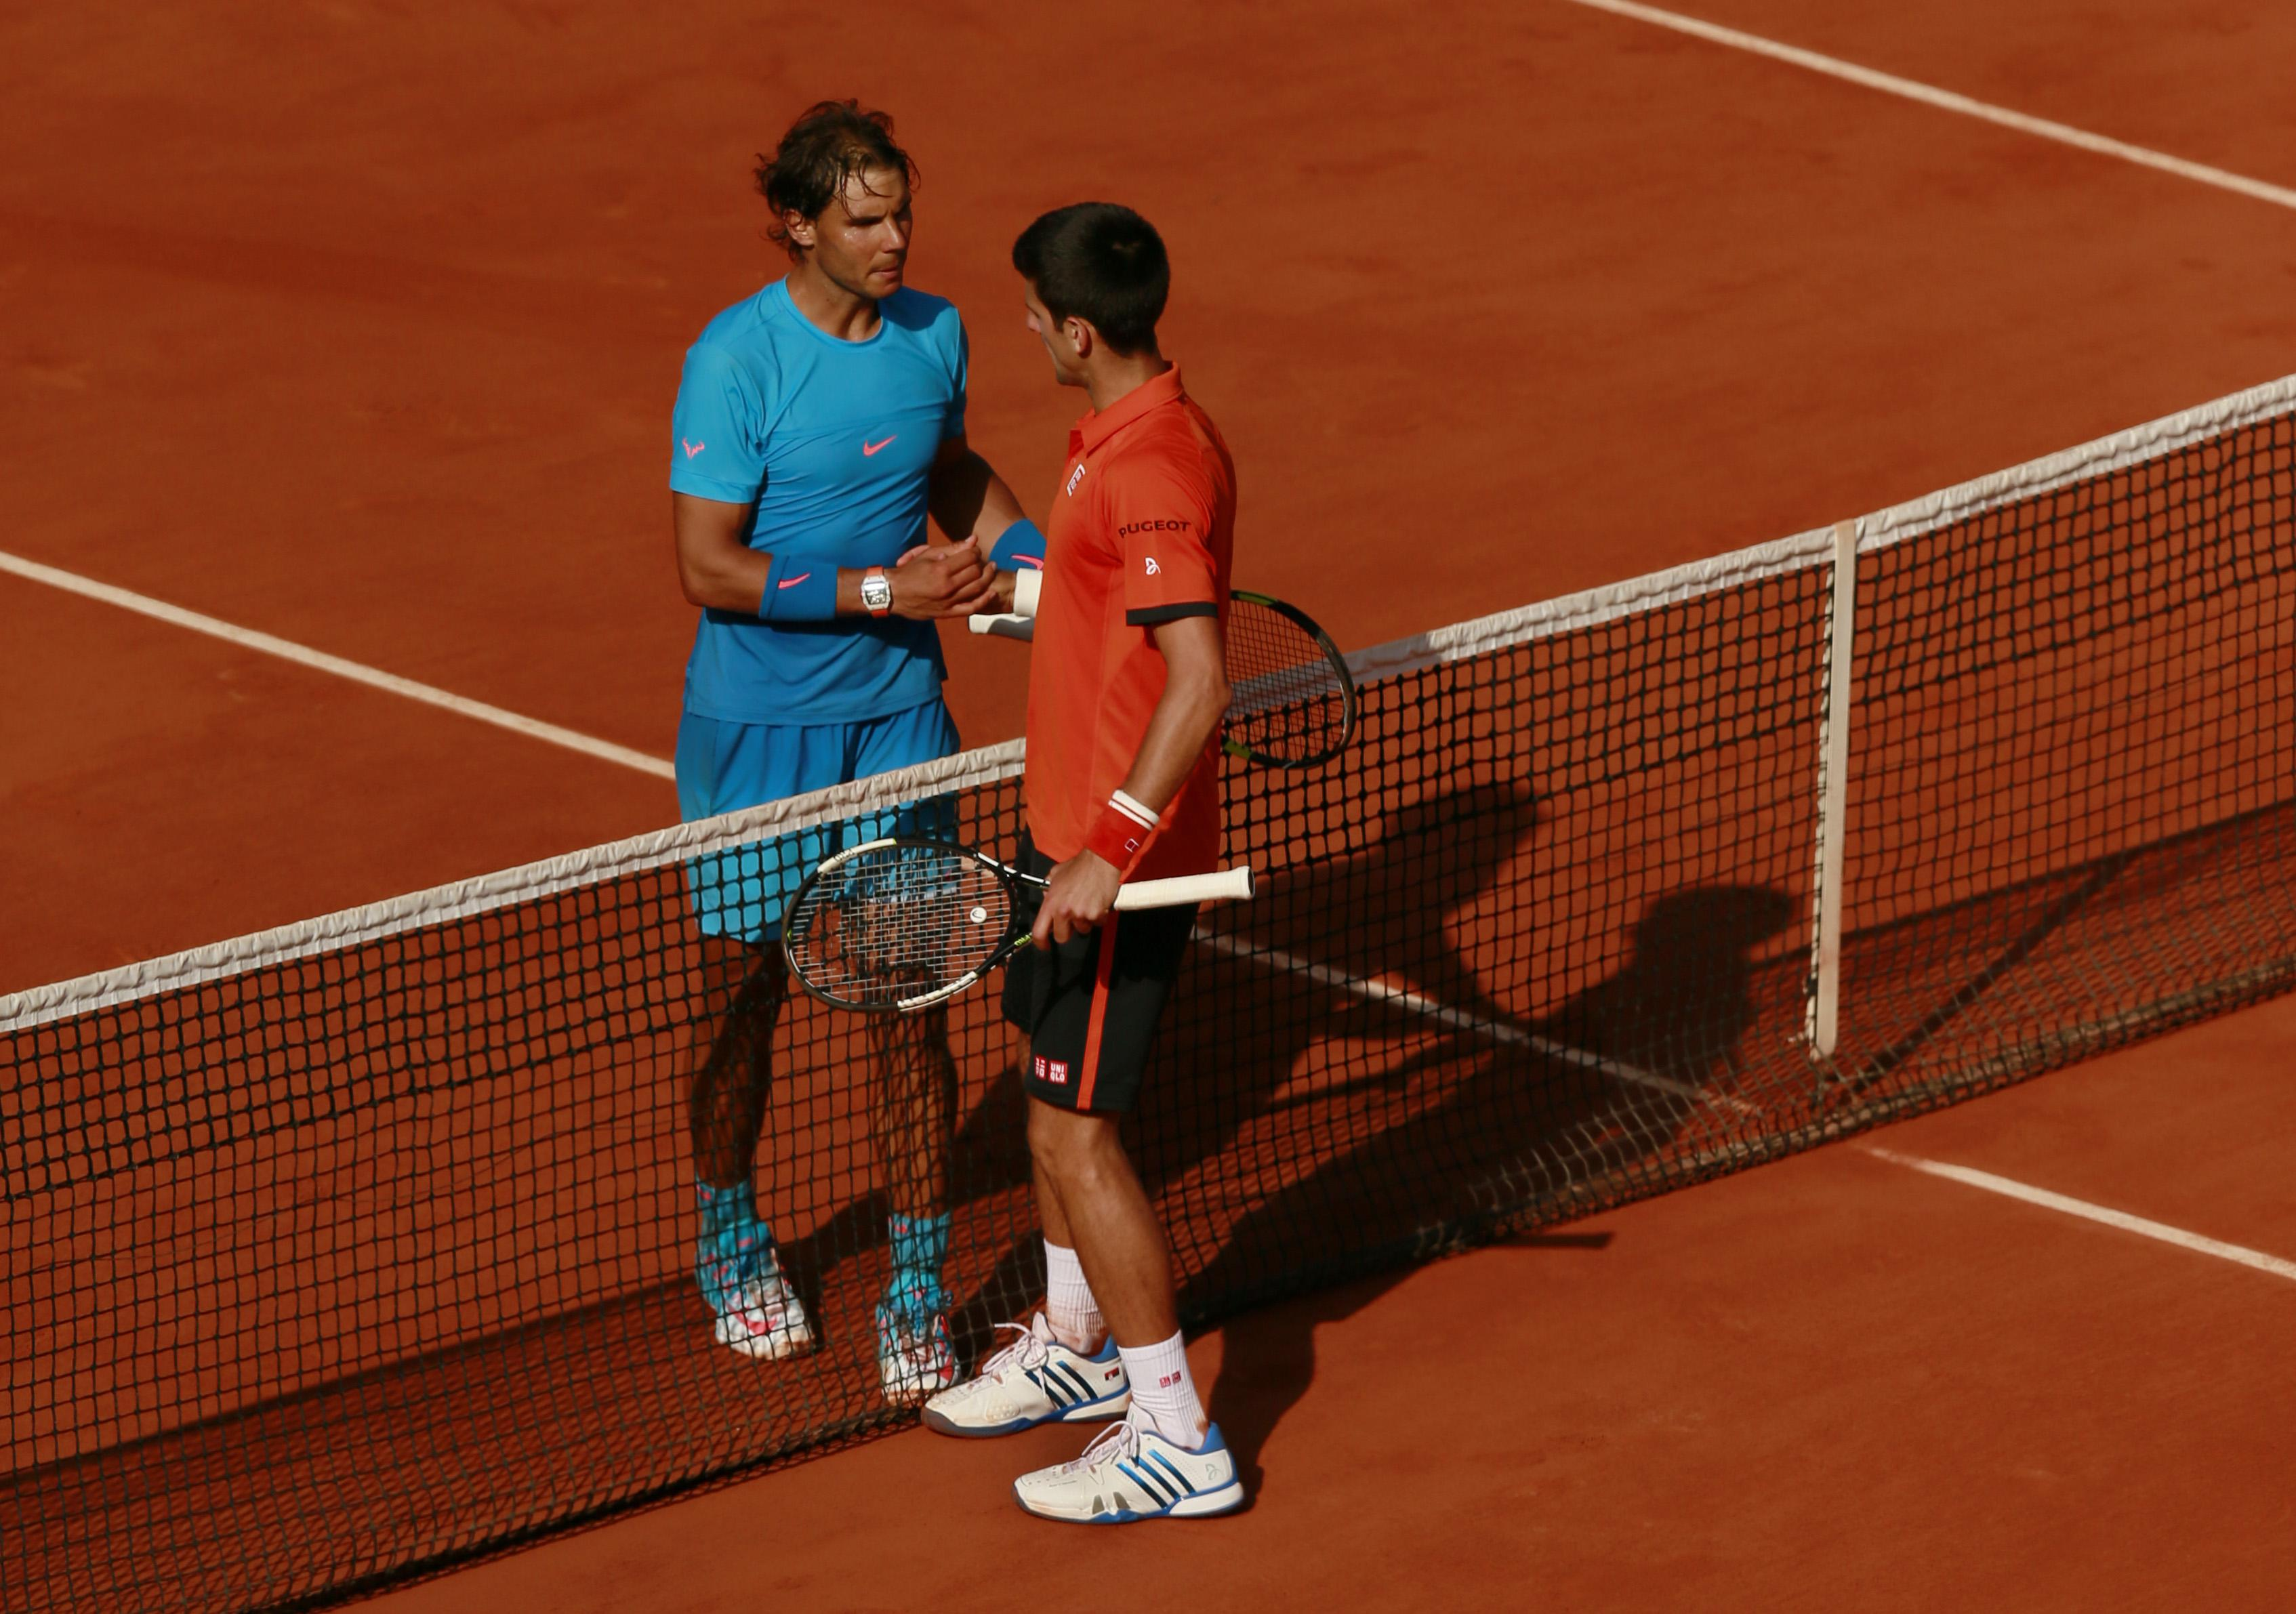 Rafael Nadal 'Can't Imagine' Missing Tournaments Purposely Like Roger Federer